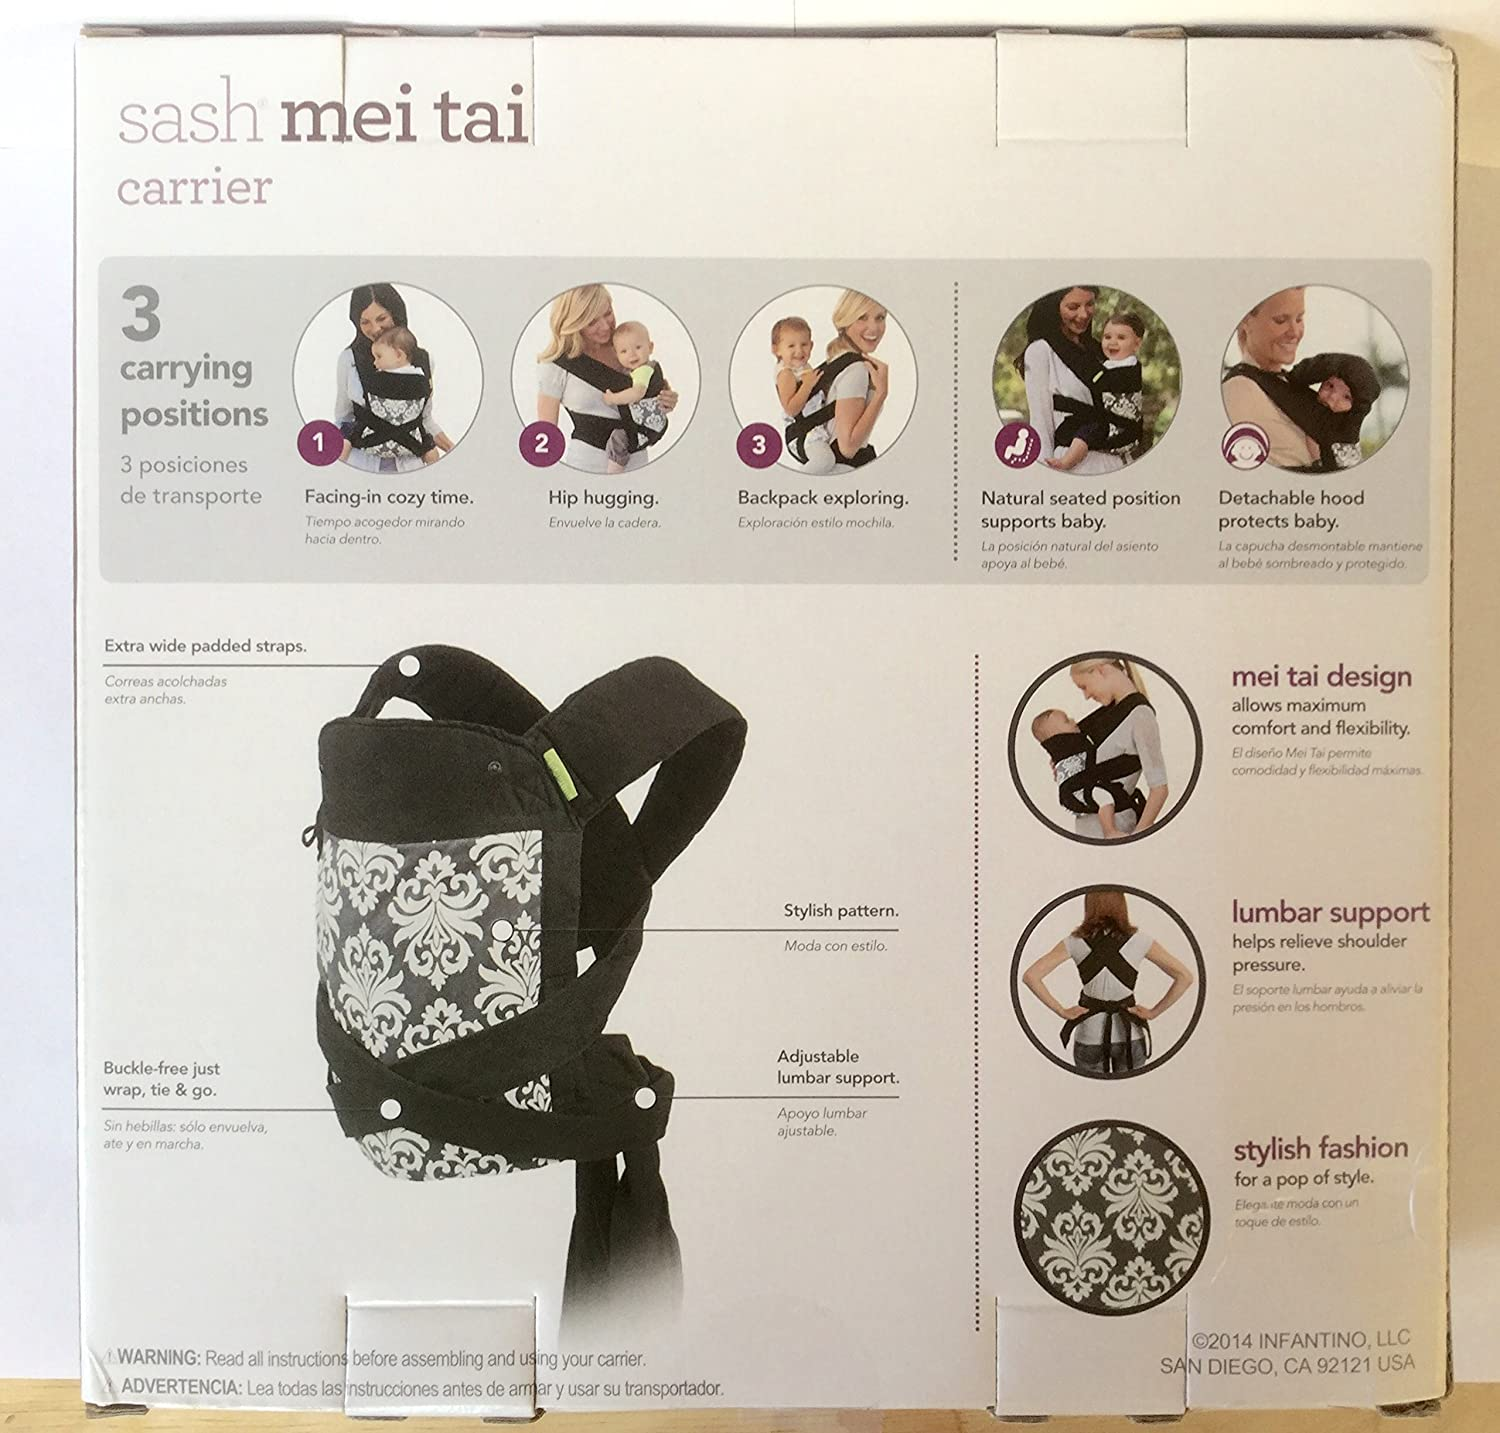 Amazon.com : 3 Carrying Positions Baby Carrier Detachable Hood Included : Baby